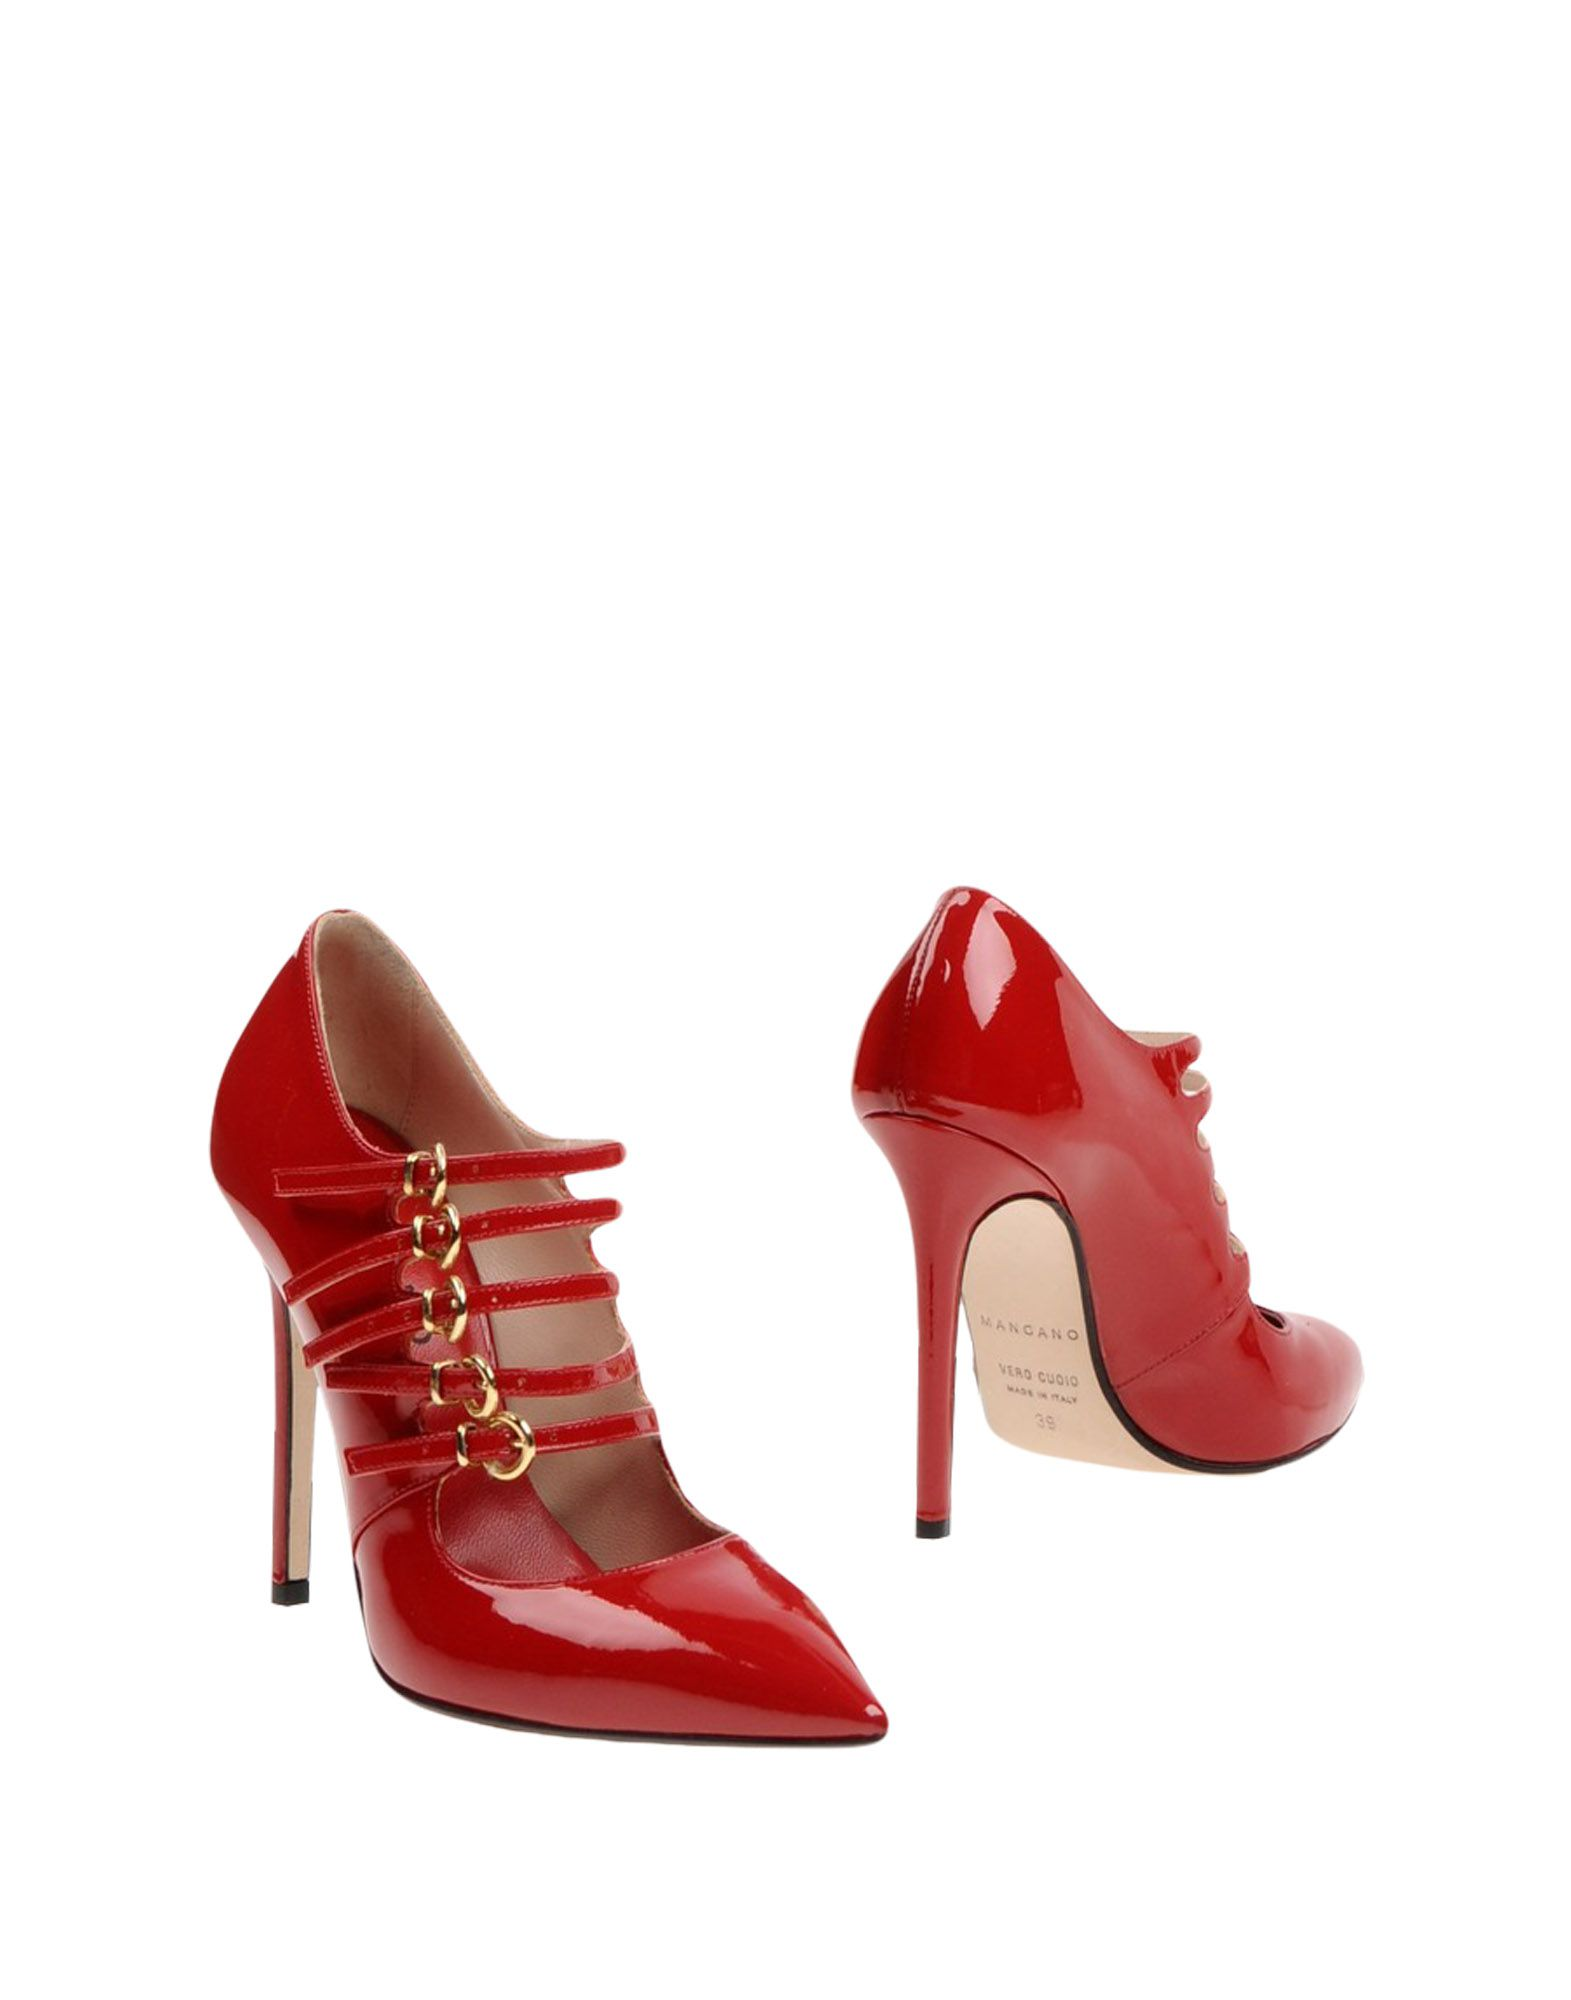 MANGANO Ankle Boot in Red